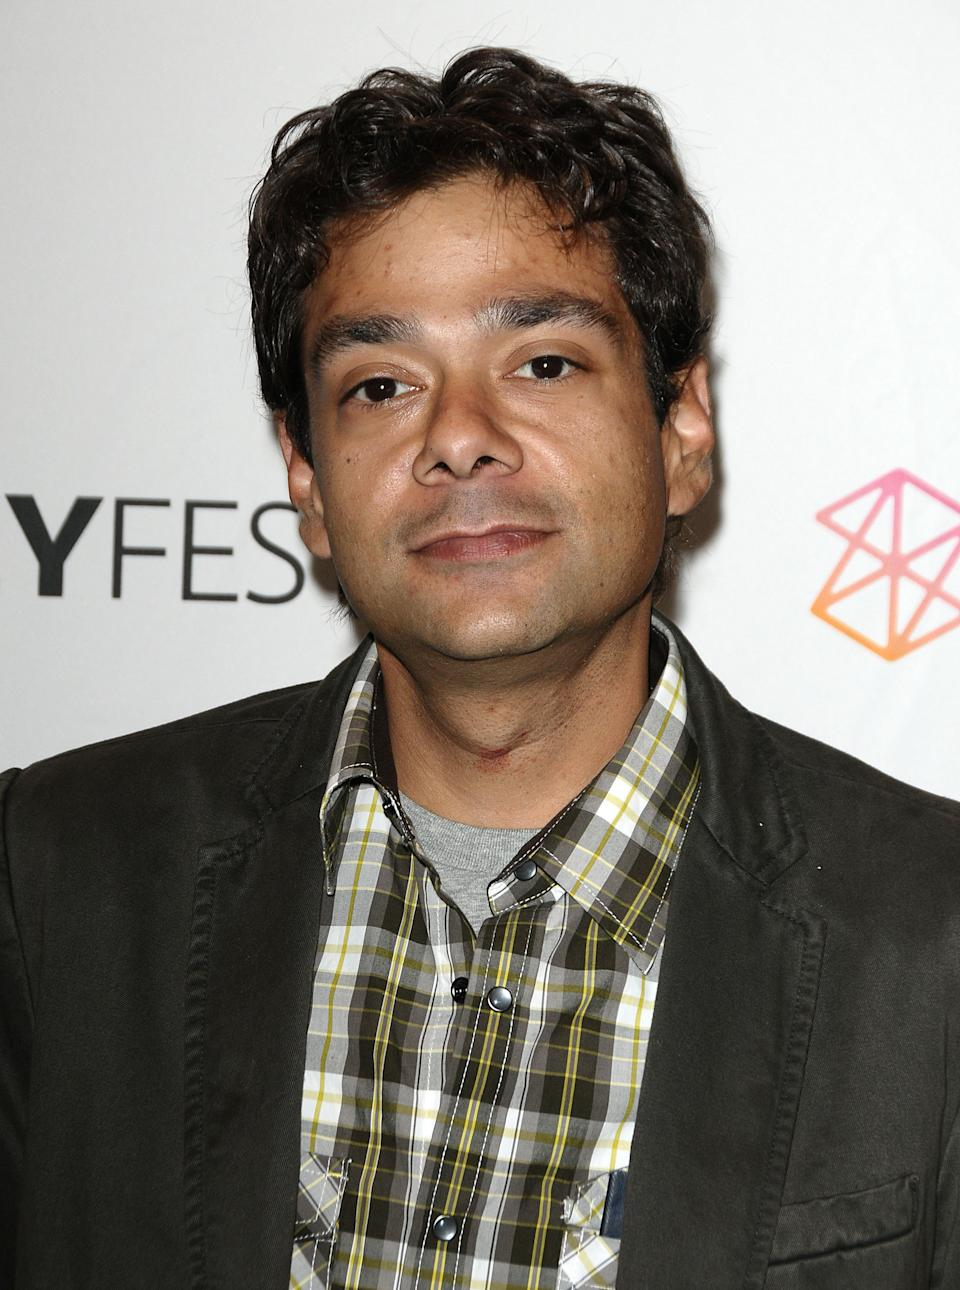 """Actor Shaun Weiss attends the """"Freaks & Geeks/Undeclared"""" event at PaleyFest 2011 at Saban Theatre on March 12, 2011 in Beverly Hills, California. *** Local Caption ***"""